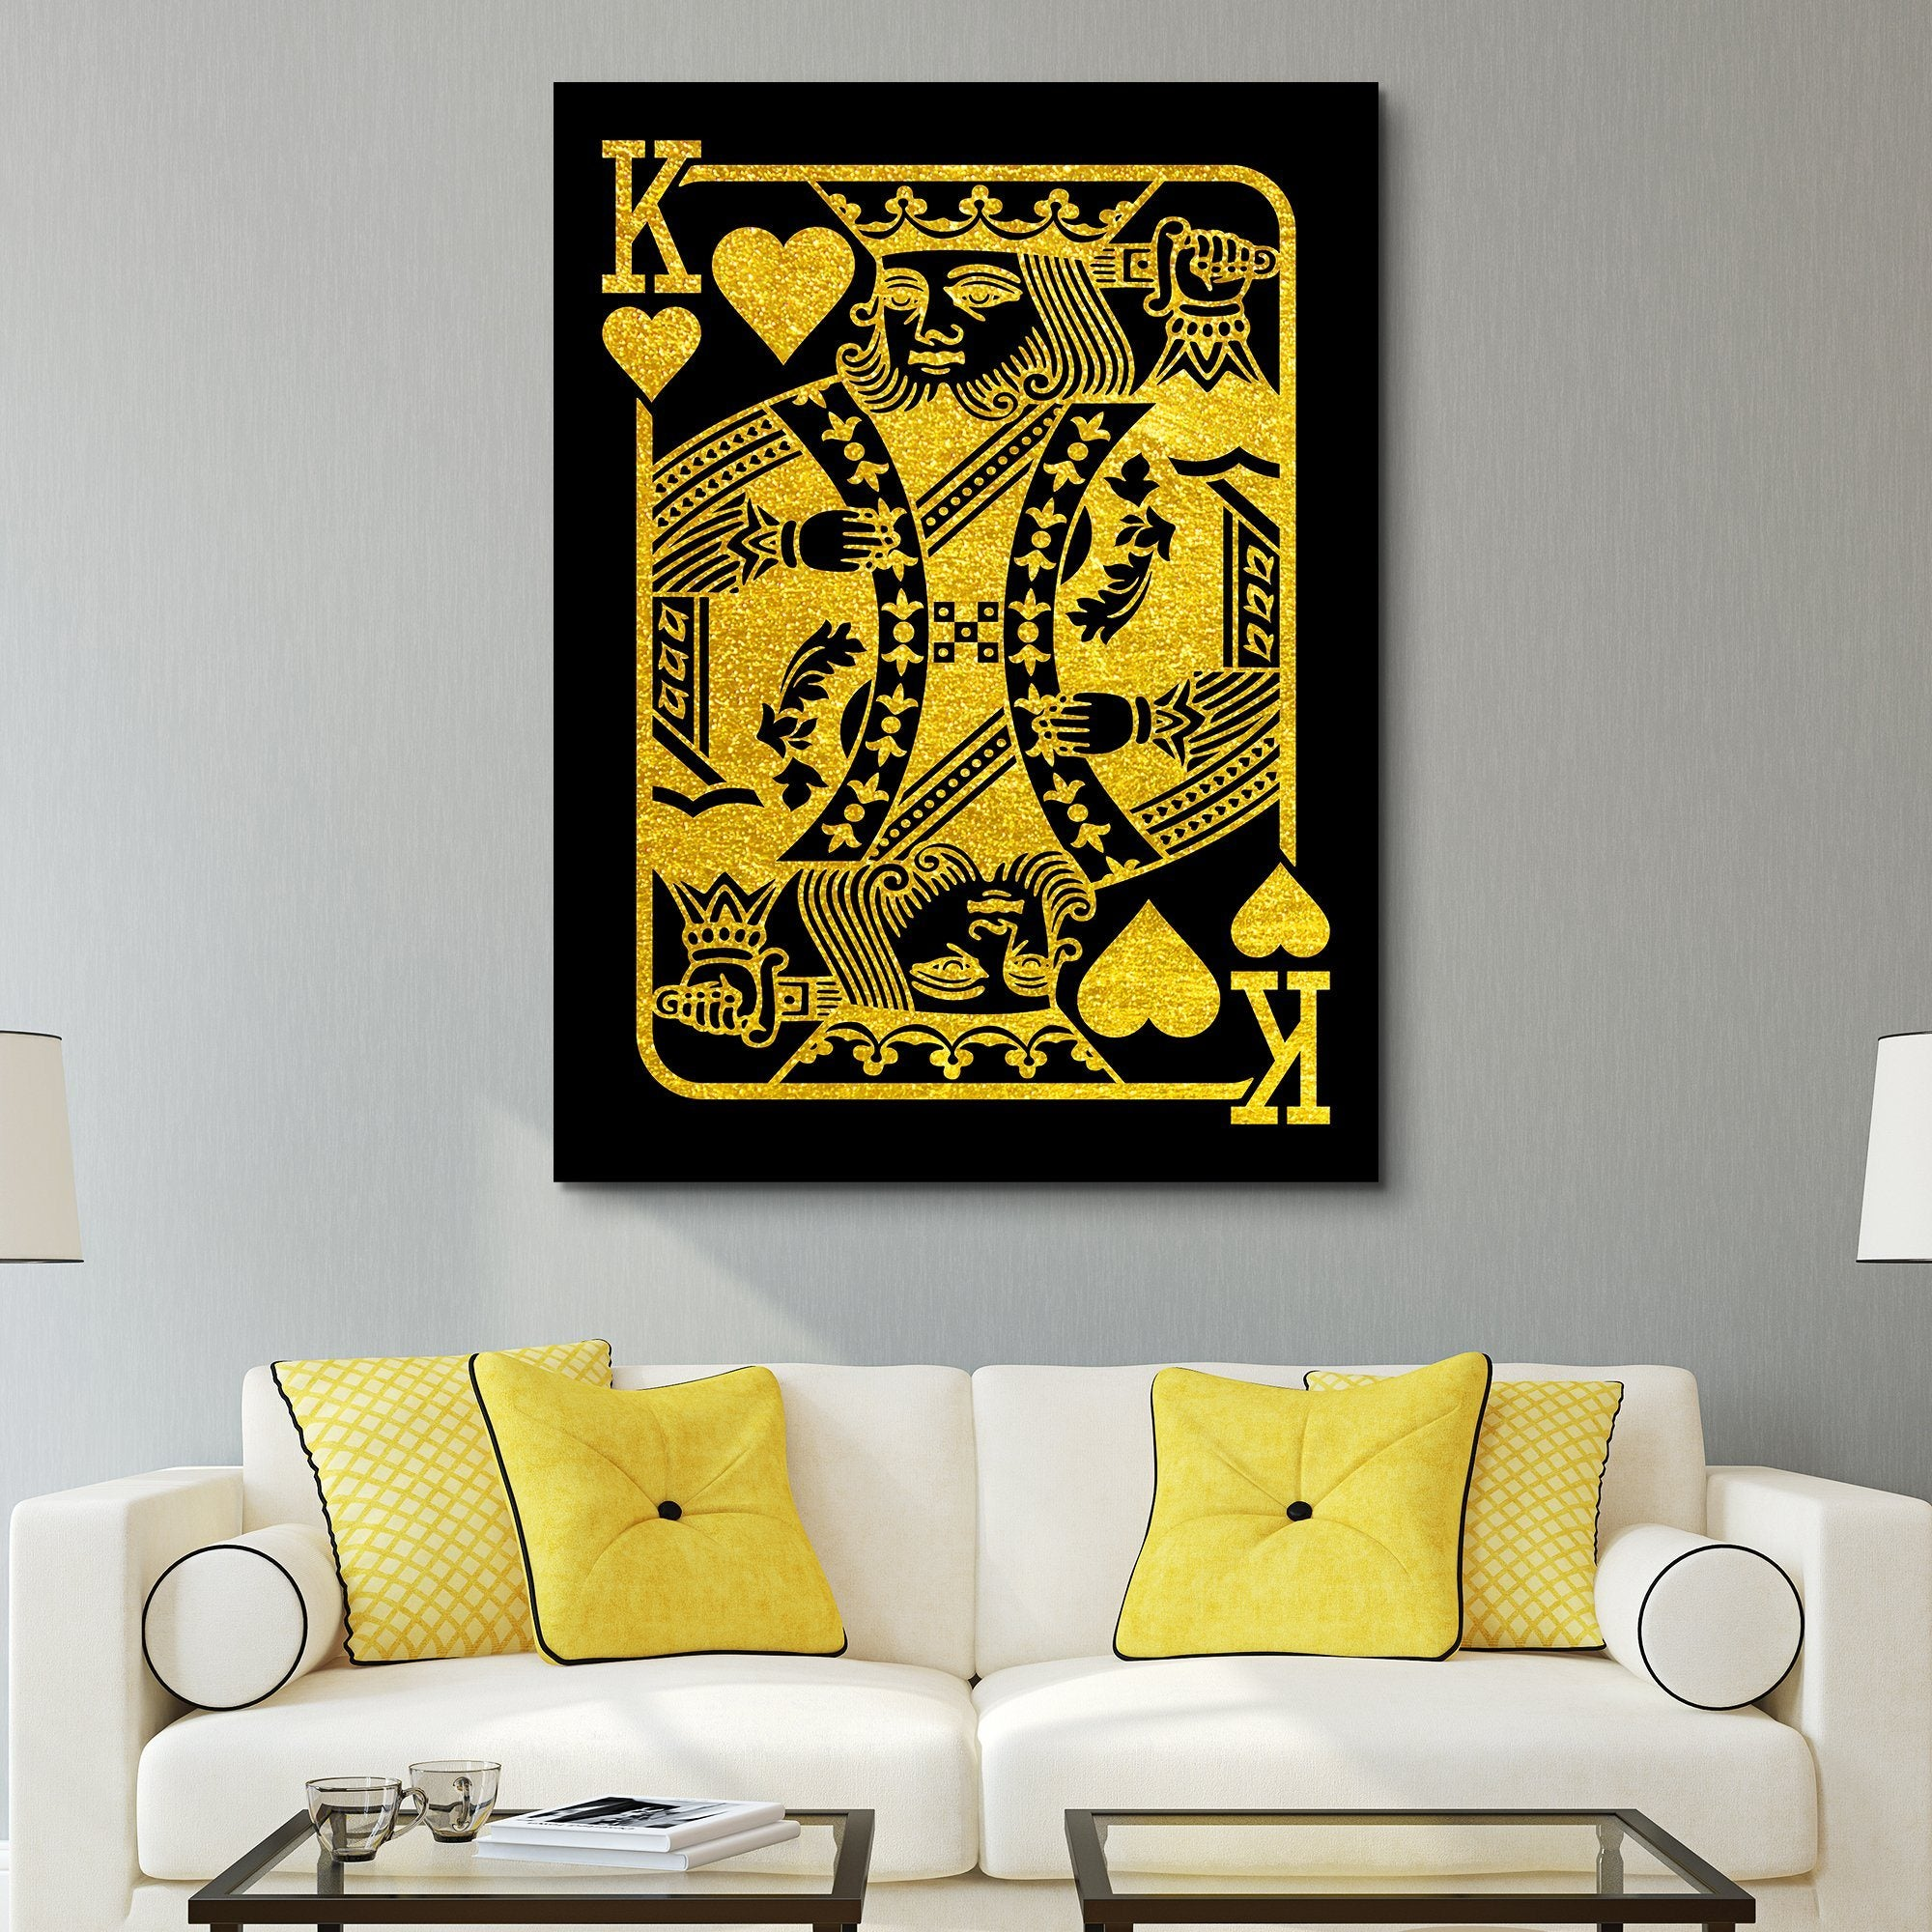 The King - Black/Gold Edition wall art